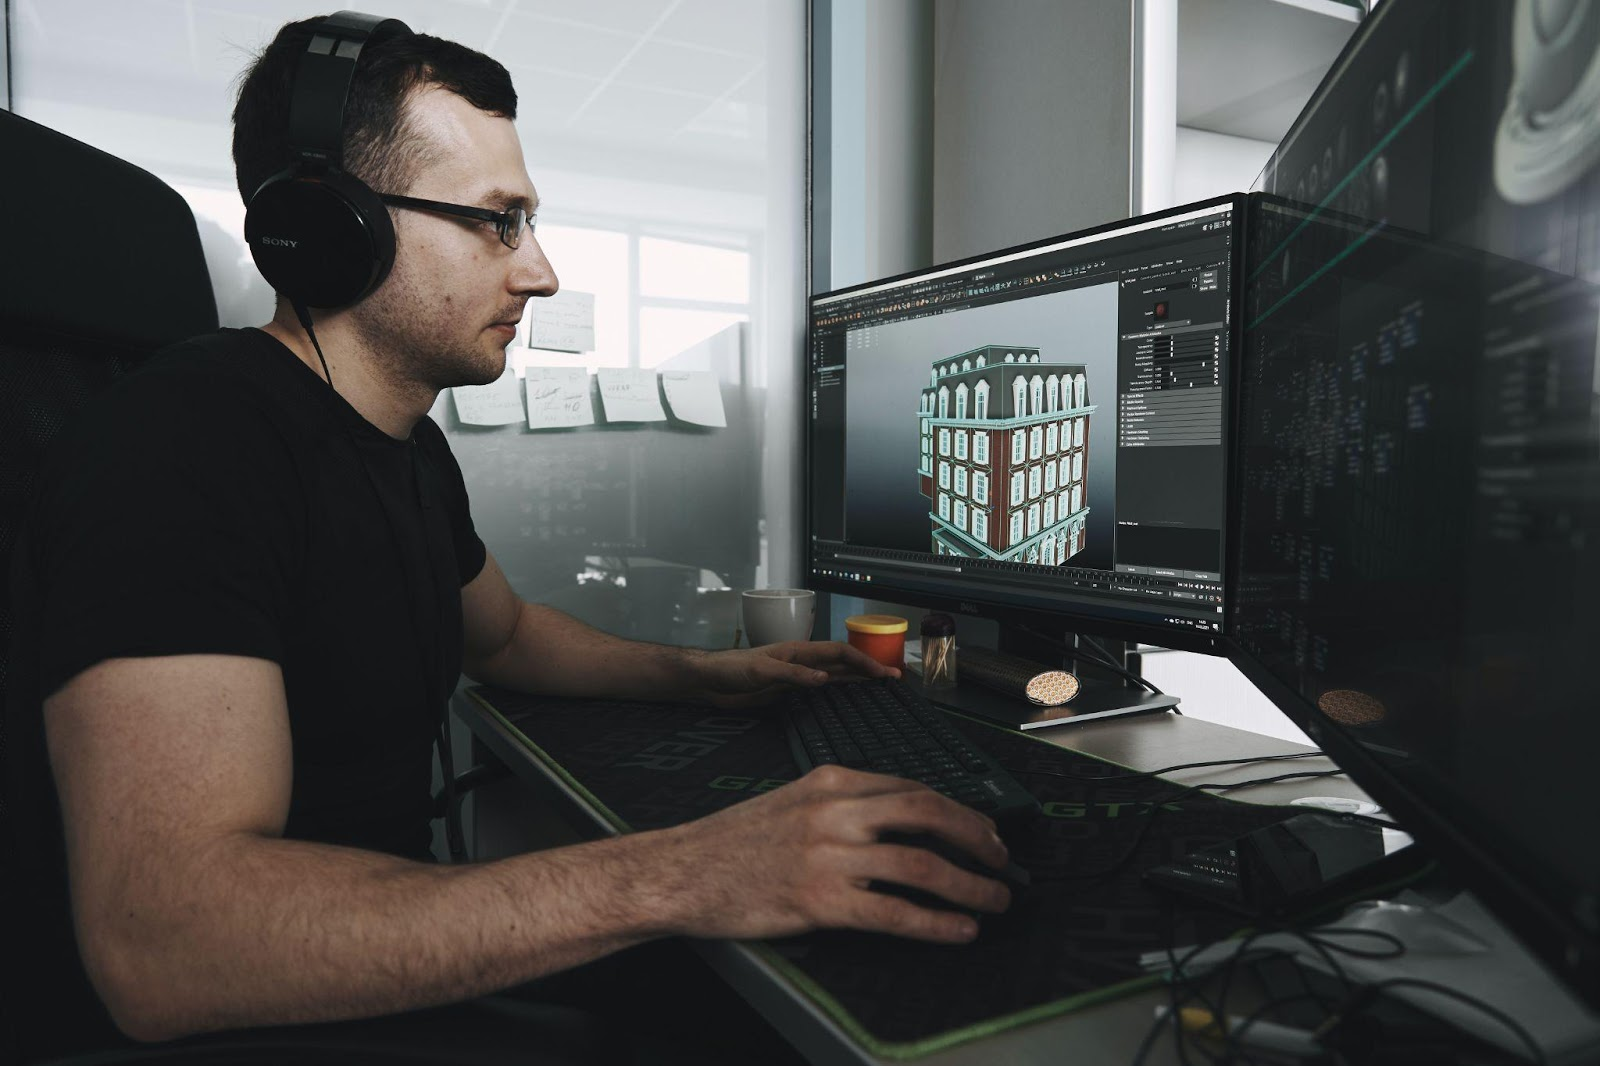 BIM is the Tool for Engineers and MEP Professionals